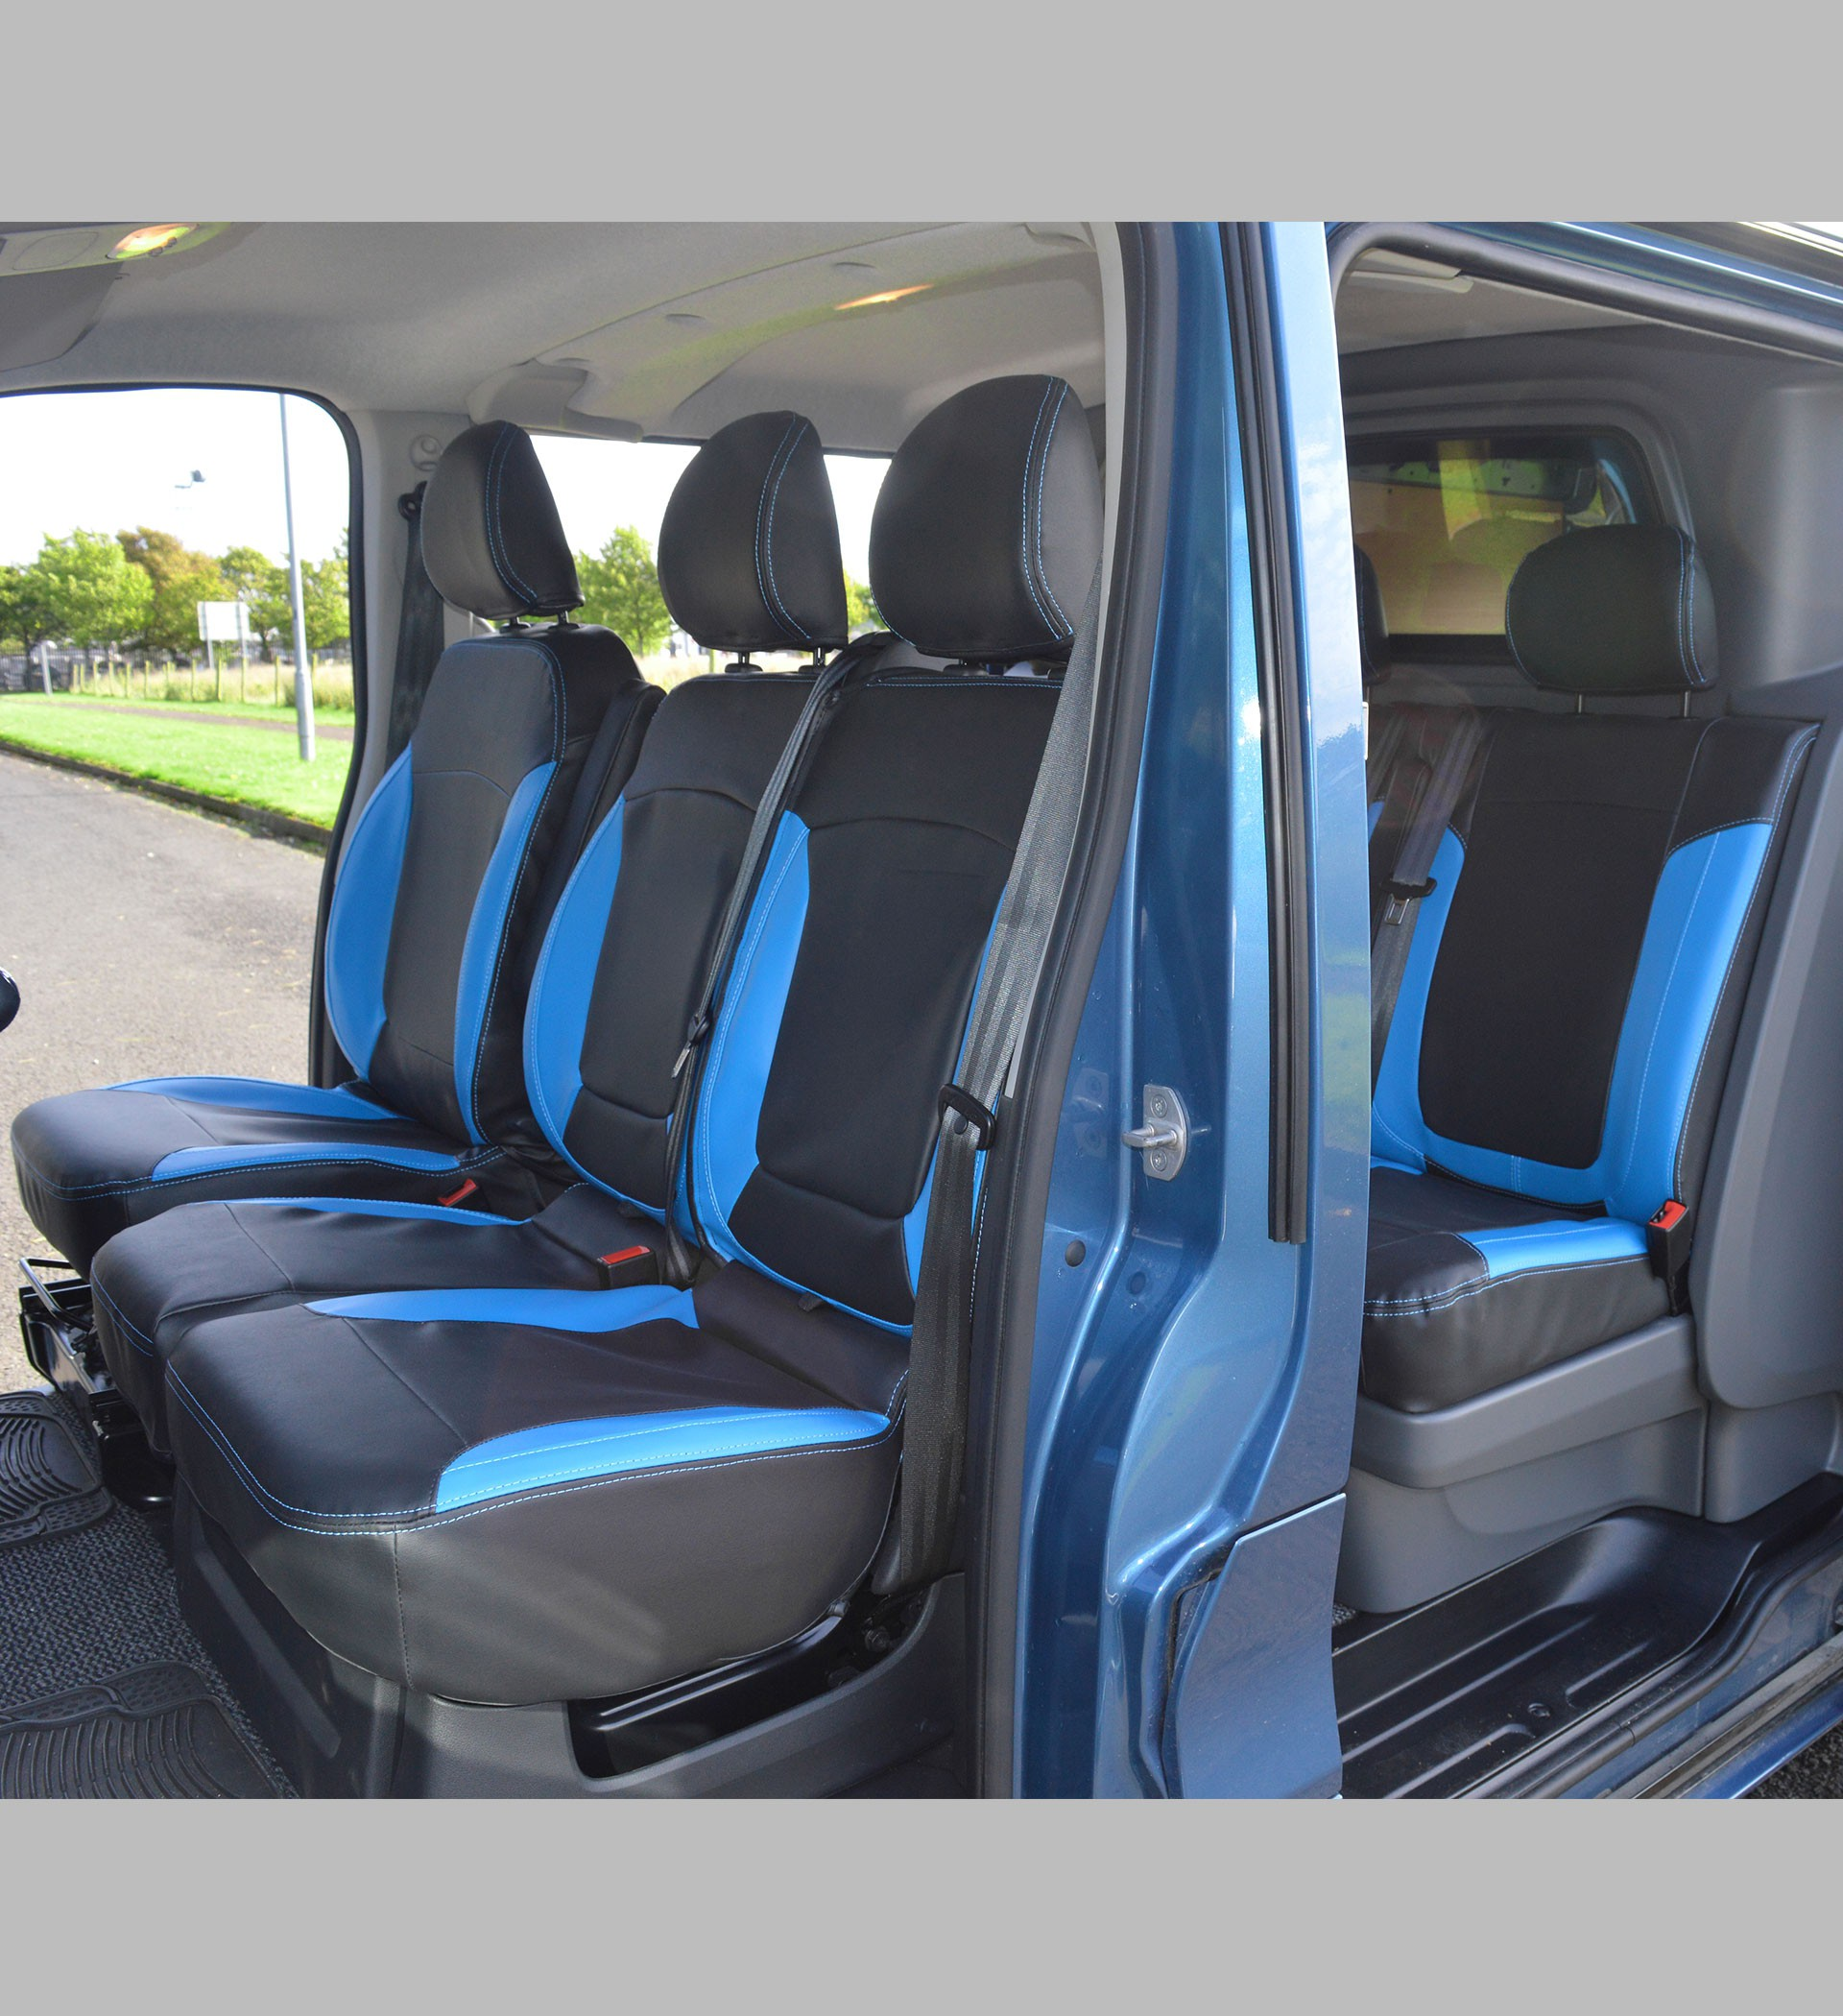 RENAULT TRAFIC BUSINESS VAN SEAT COVERS LEATHER DELUXE HEAVY DUTY 2+1